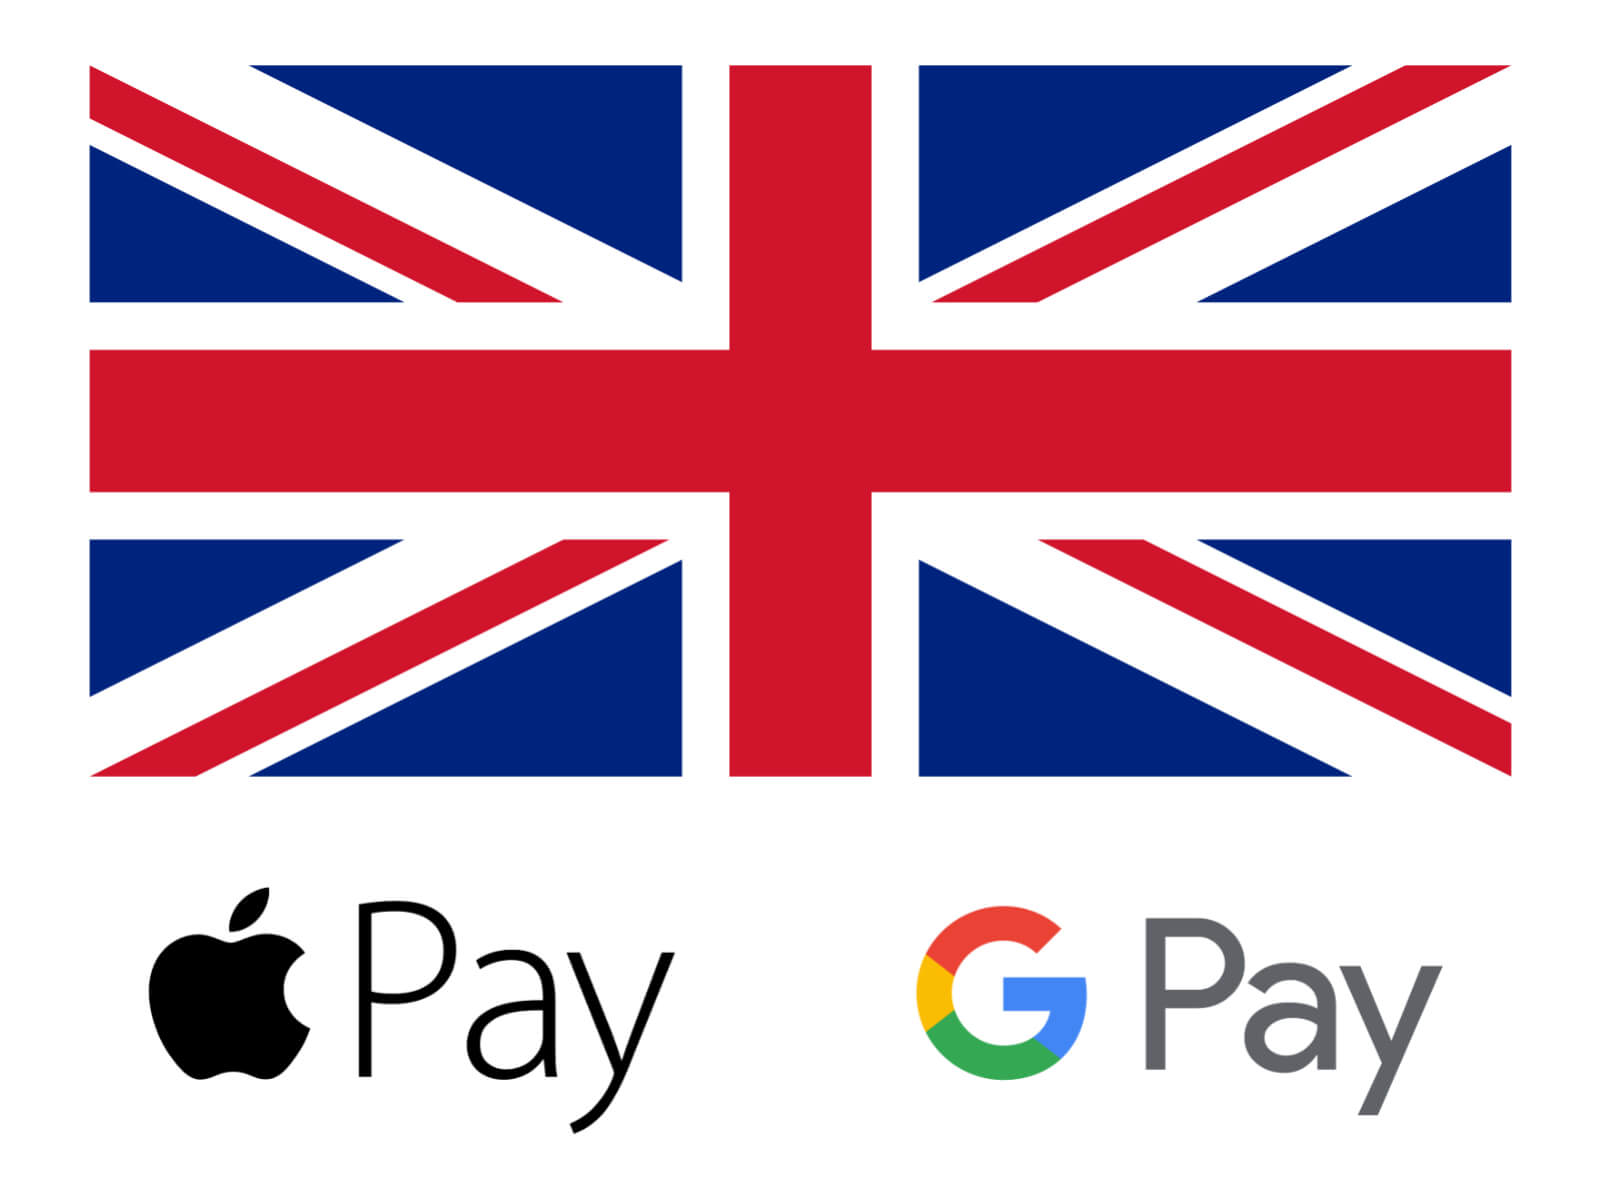 The UK government now supports Apple and Google Pay for some services